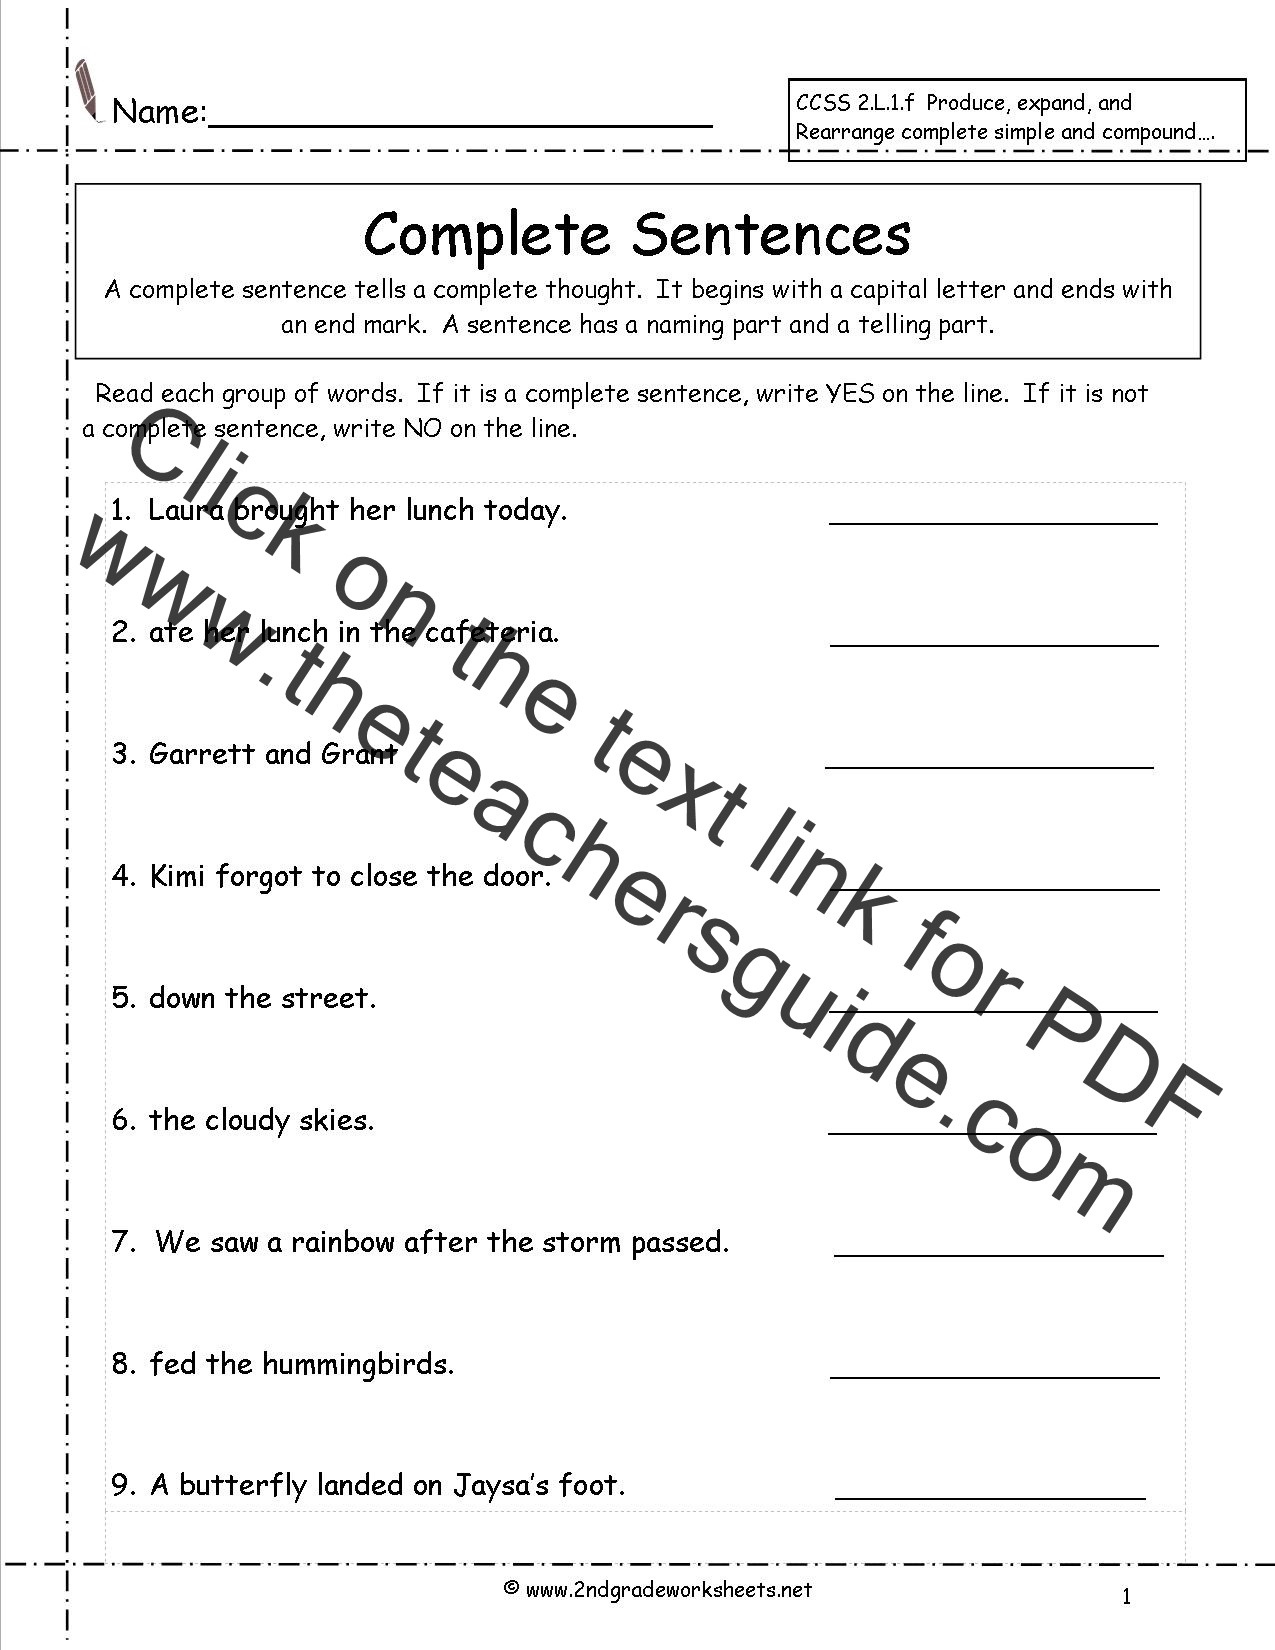 Writing A Complete Sentence Worksheets Second Grade Sentences Worksheets Ccss 2 L 1 F Worksheets